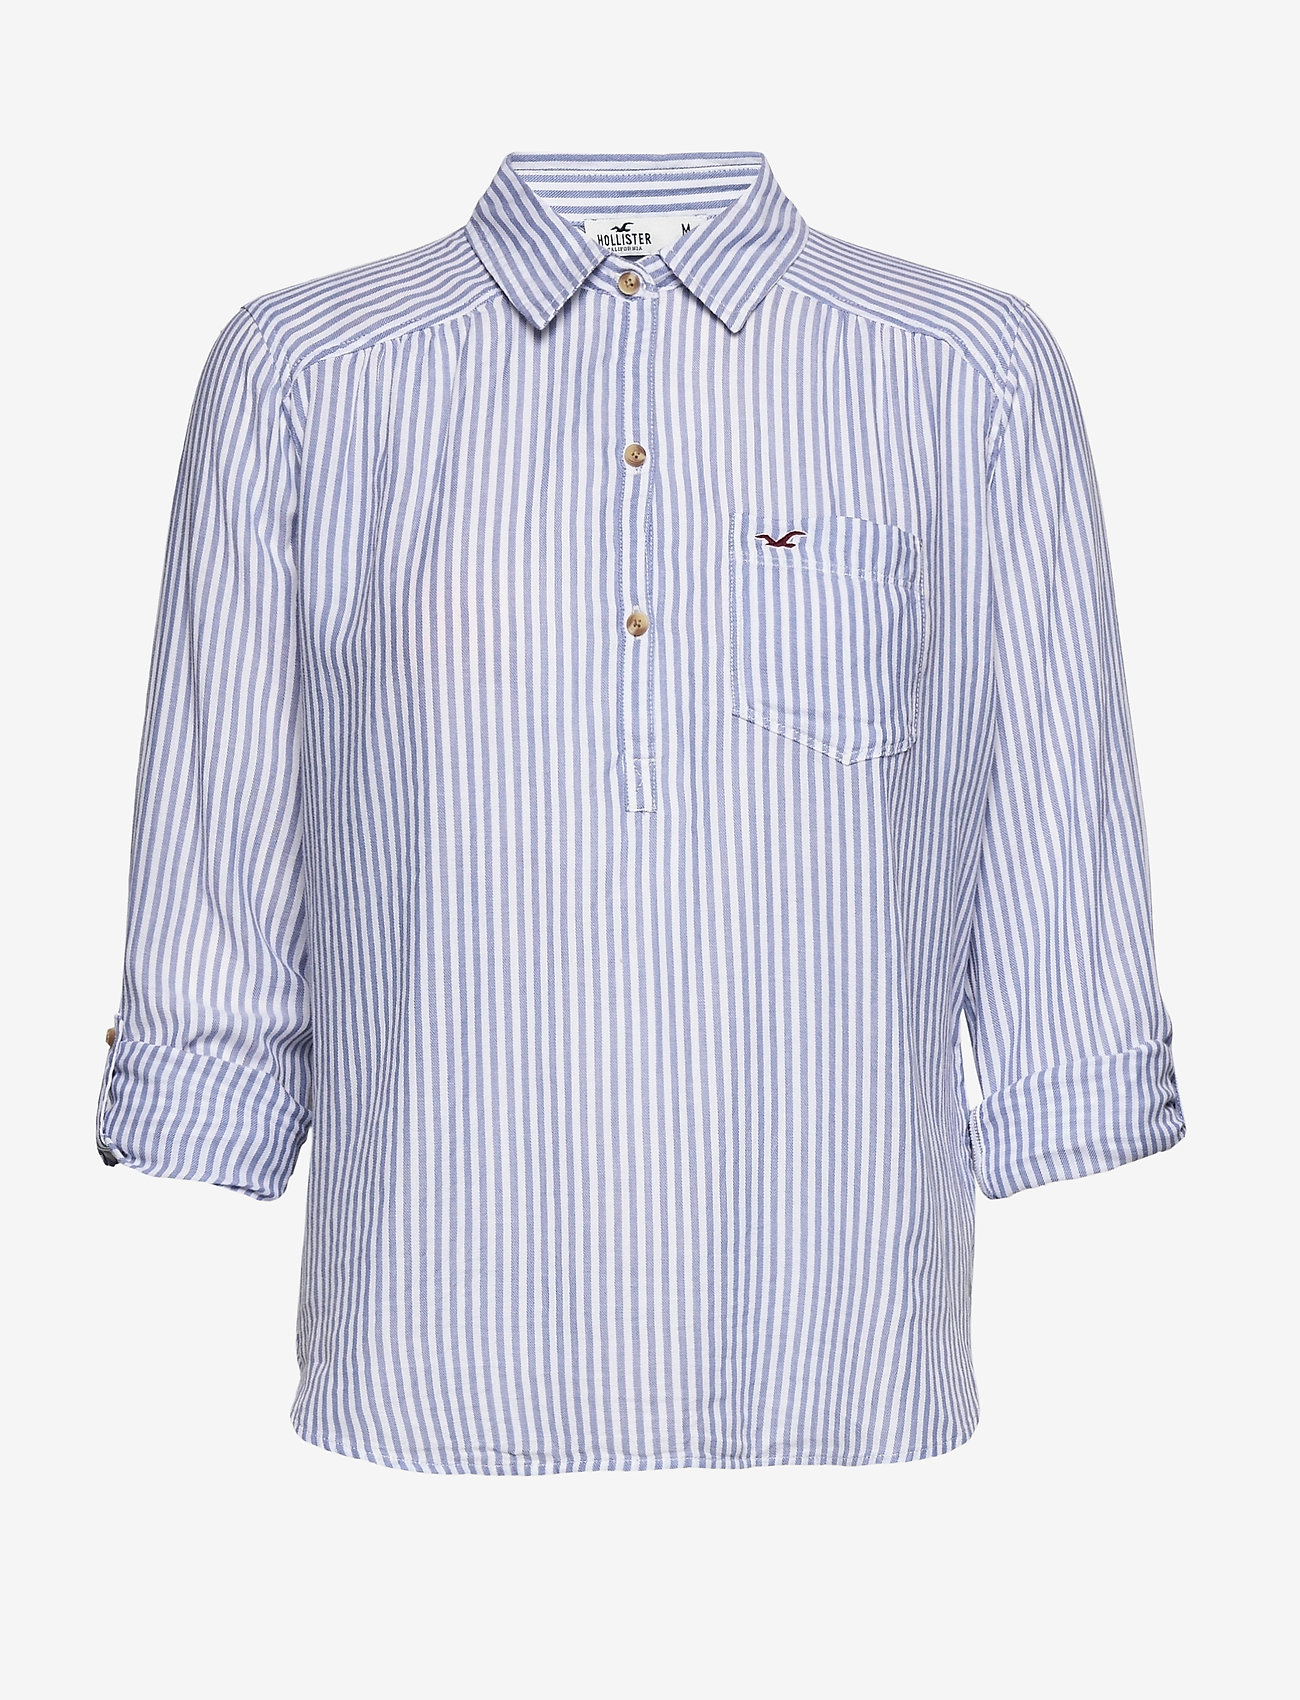 Hollister - POPOVER - chemises à manches longues - blue stripe - 1